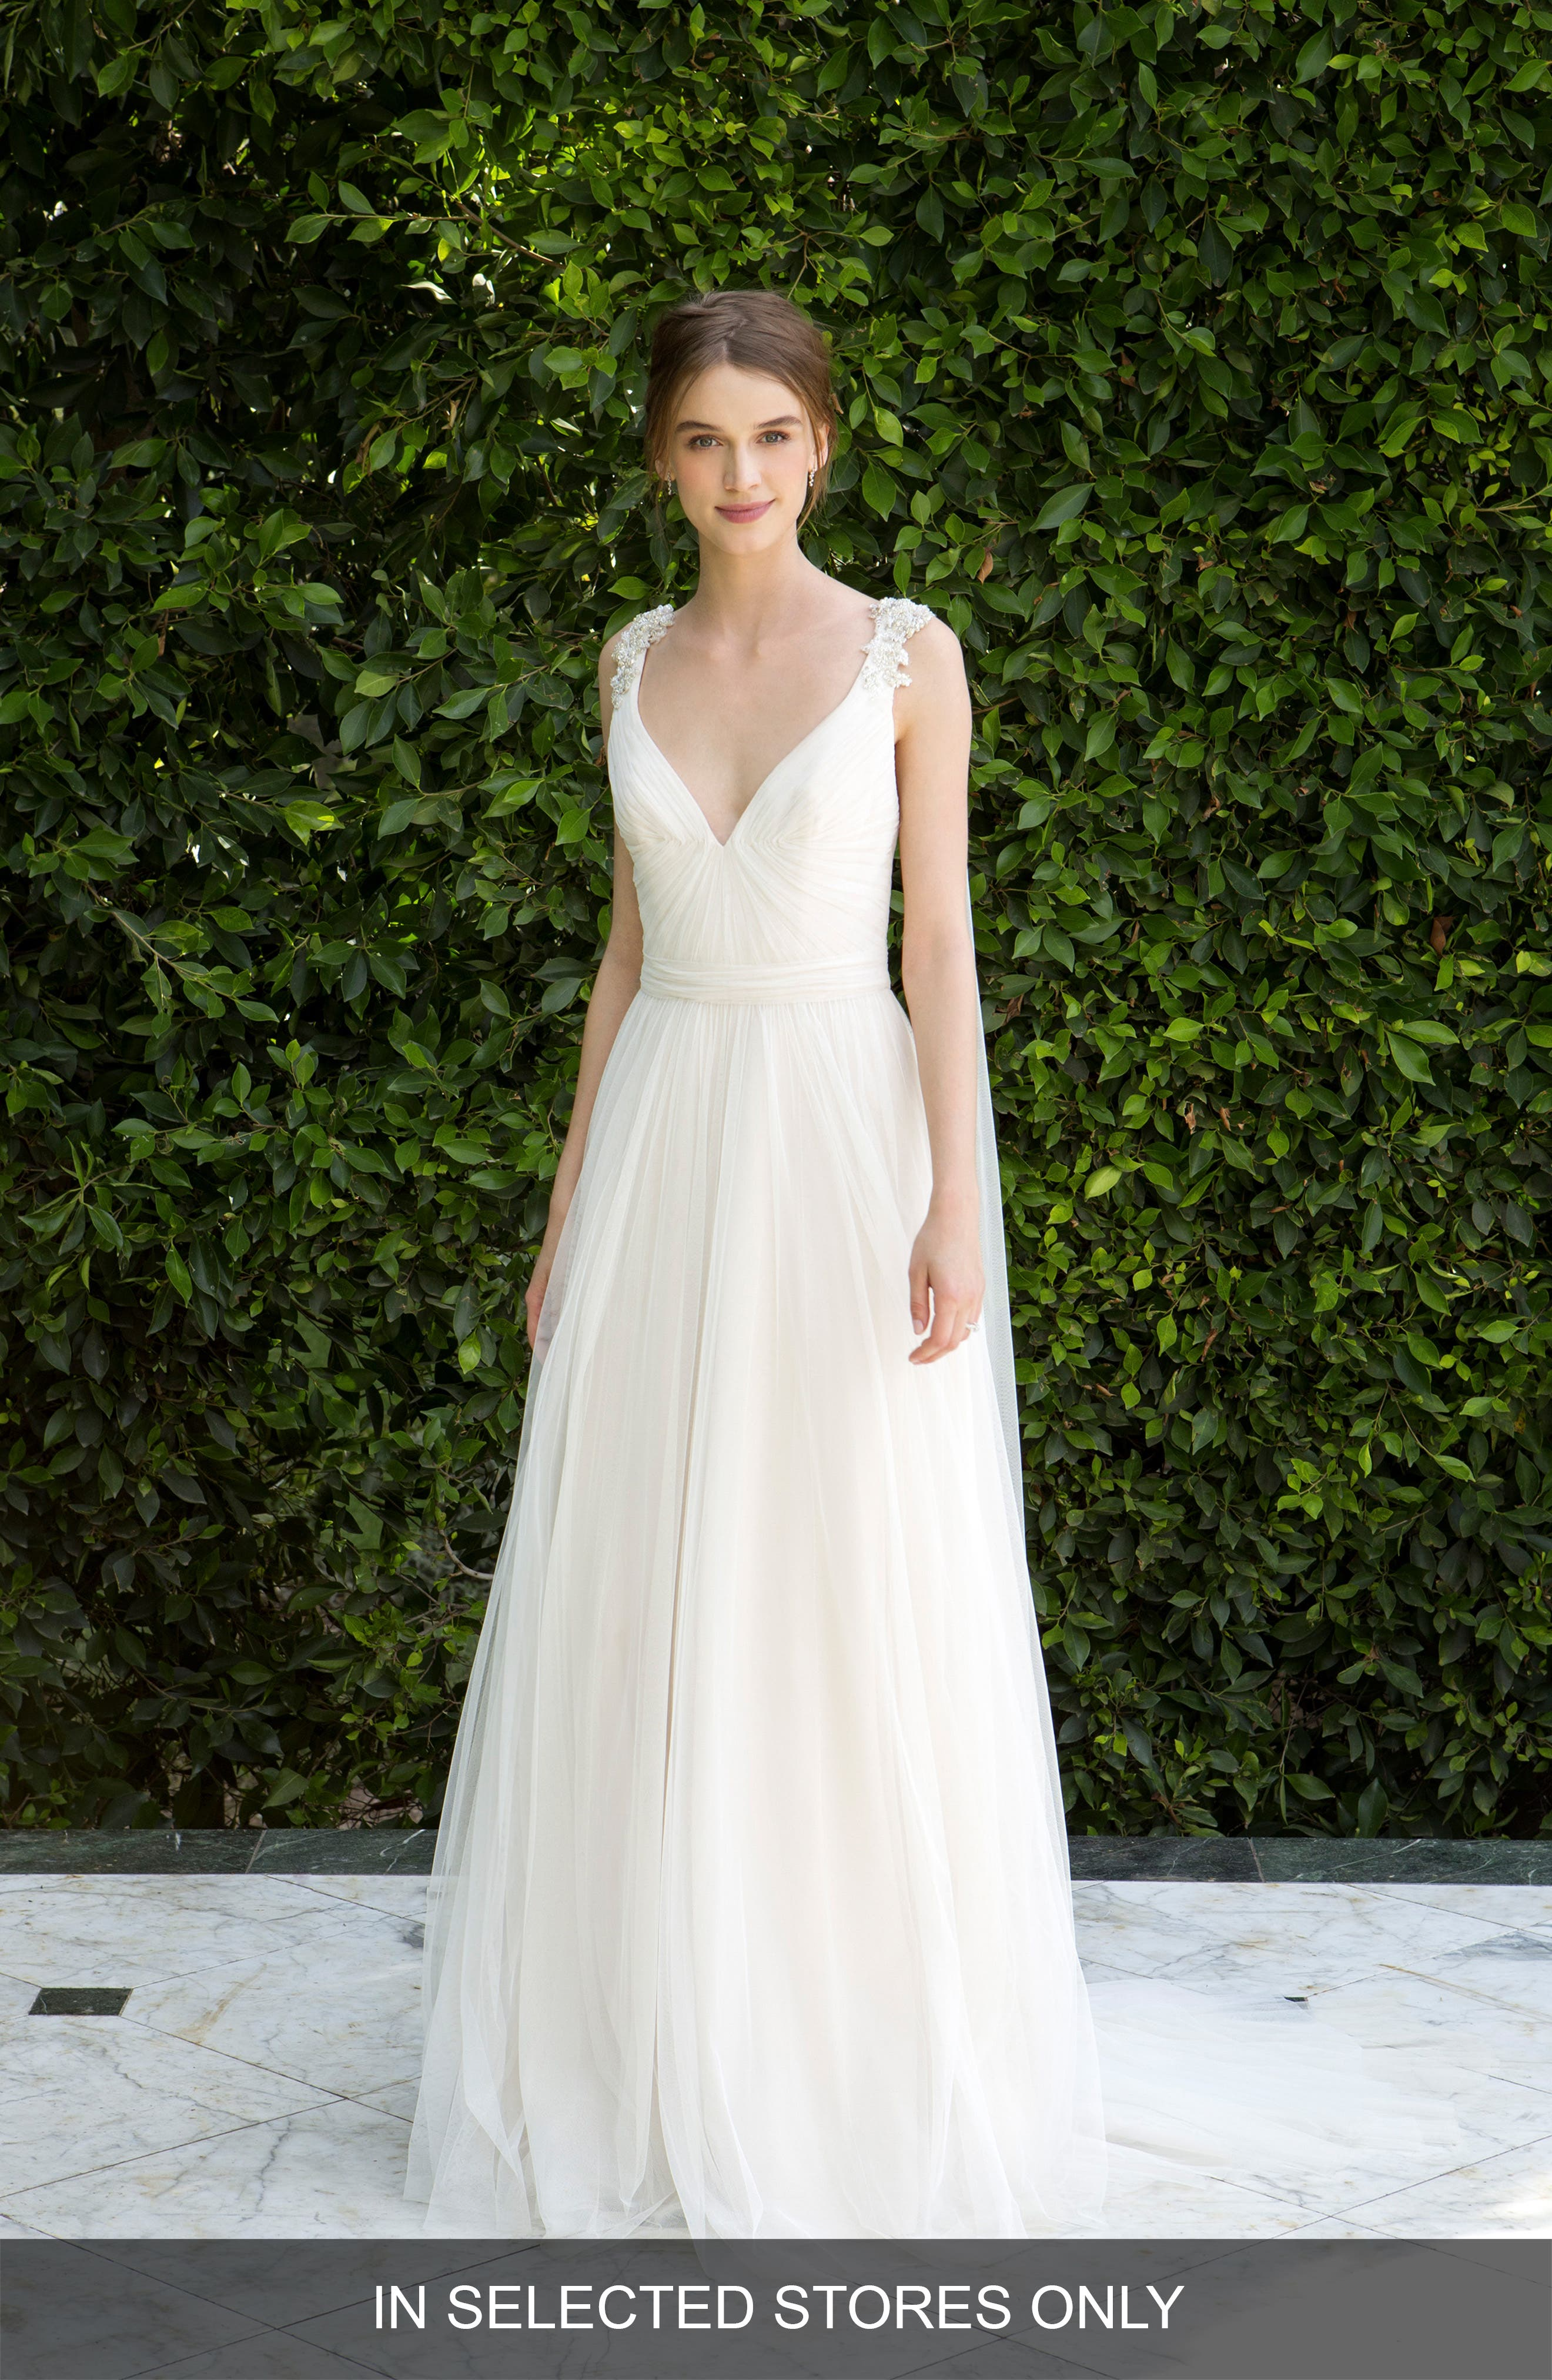 Beaded Soft Tulle Dress with Tails,                             Alternate thumbnail 2, color,                             904